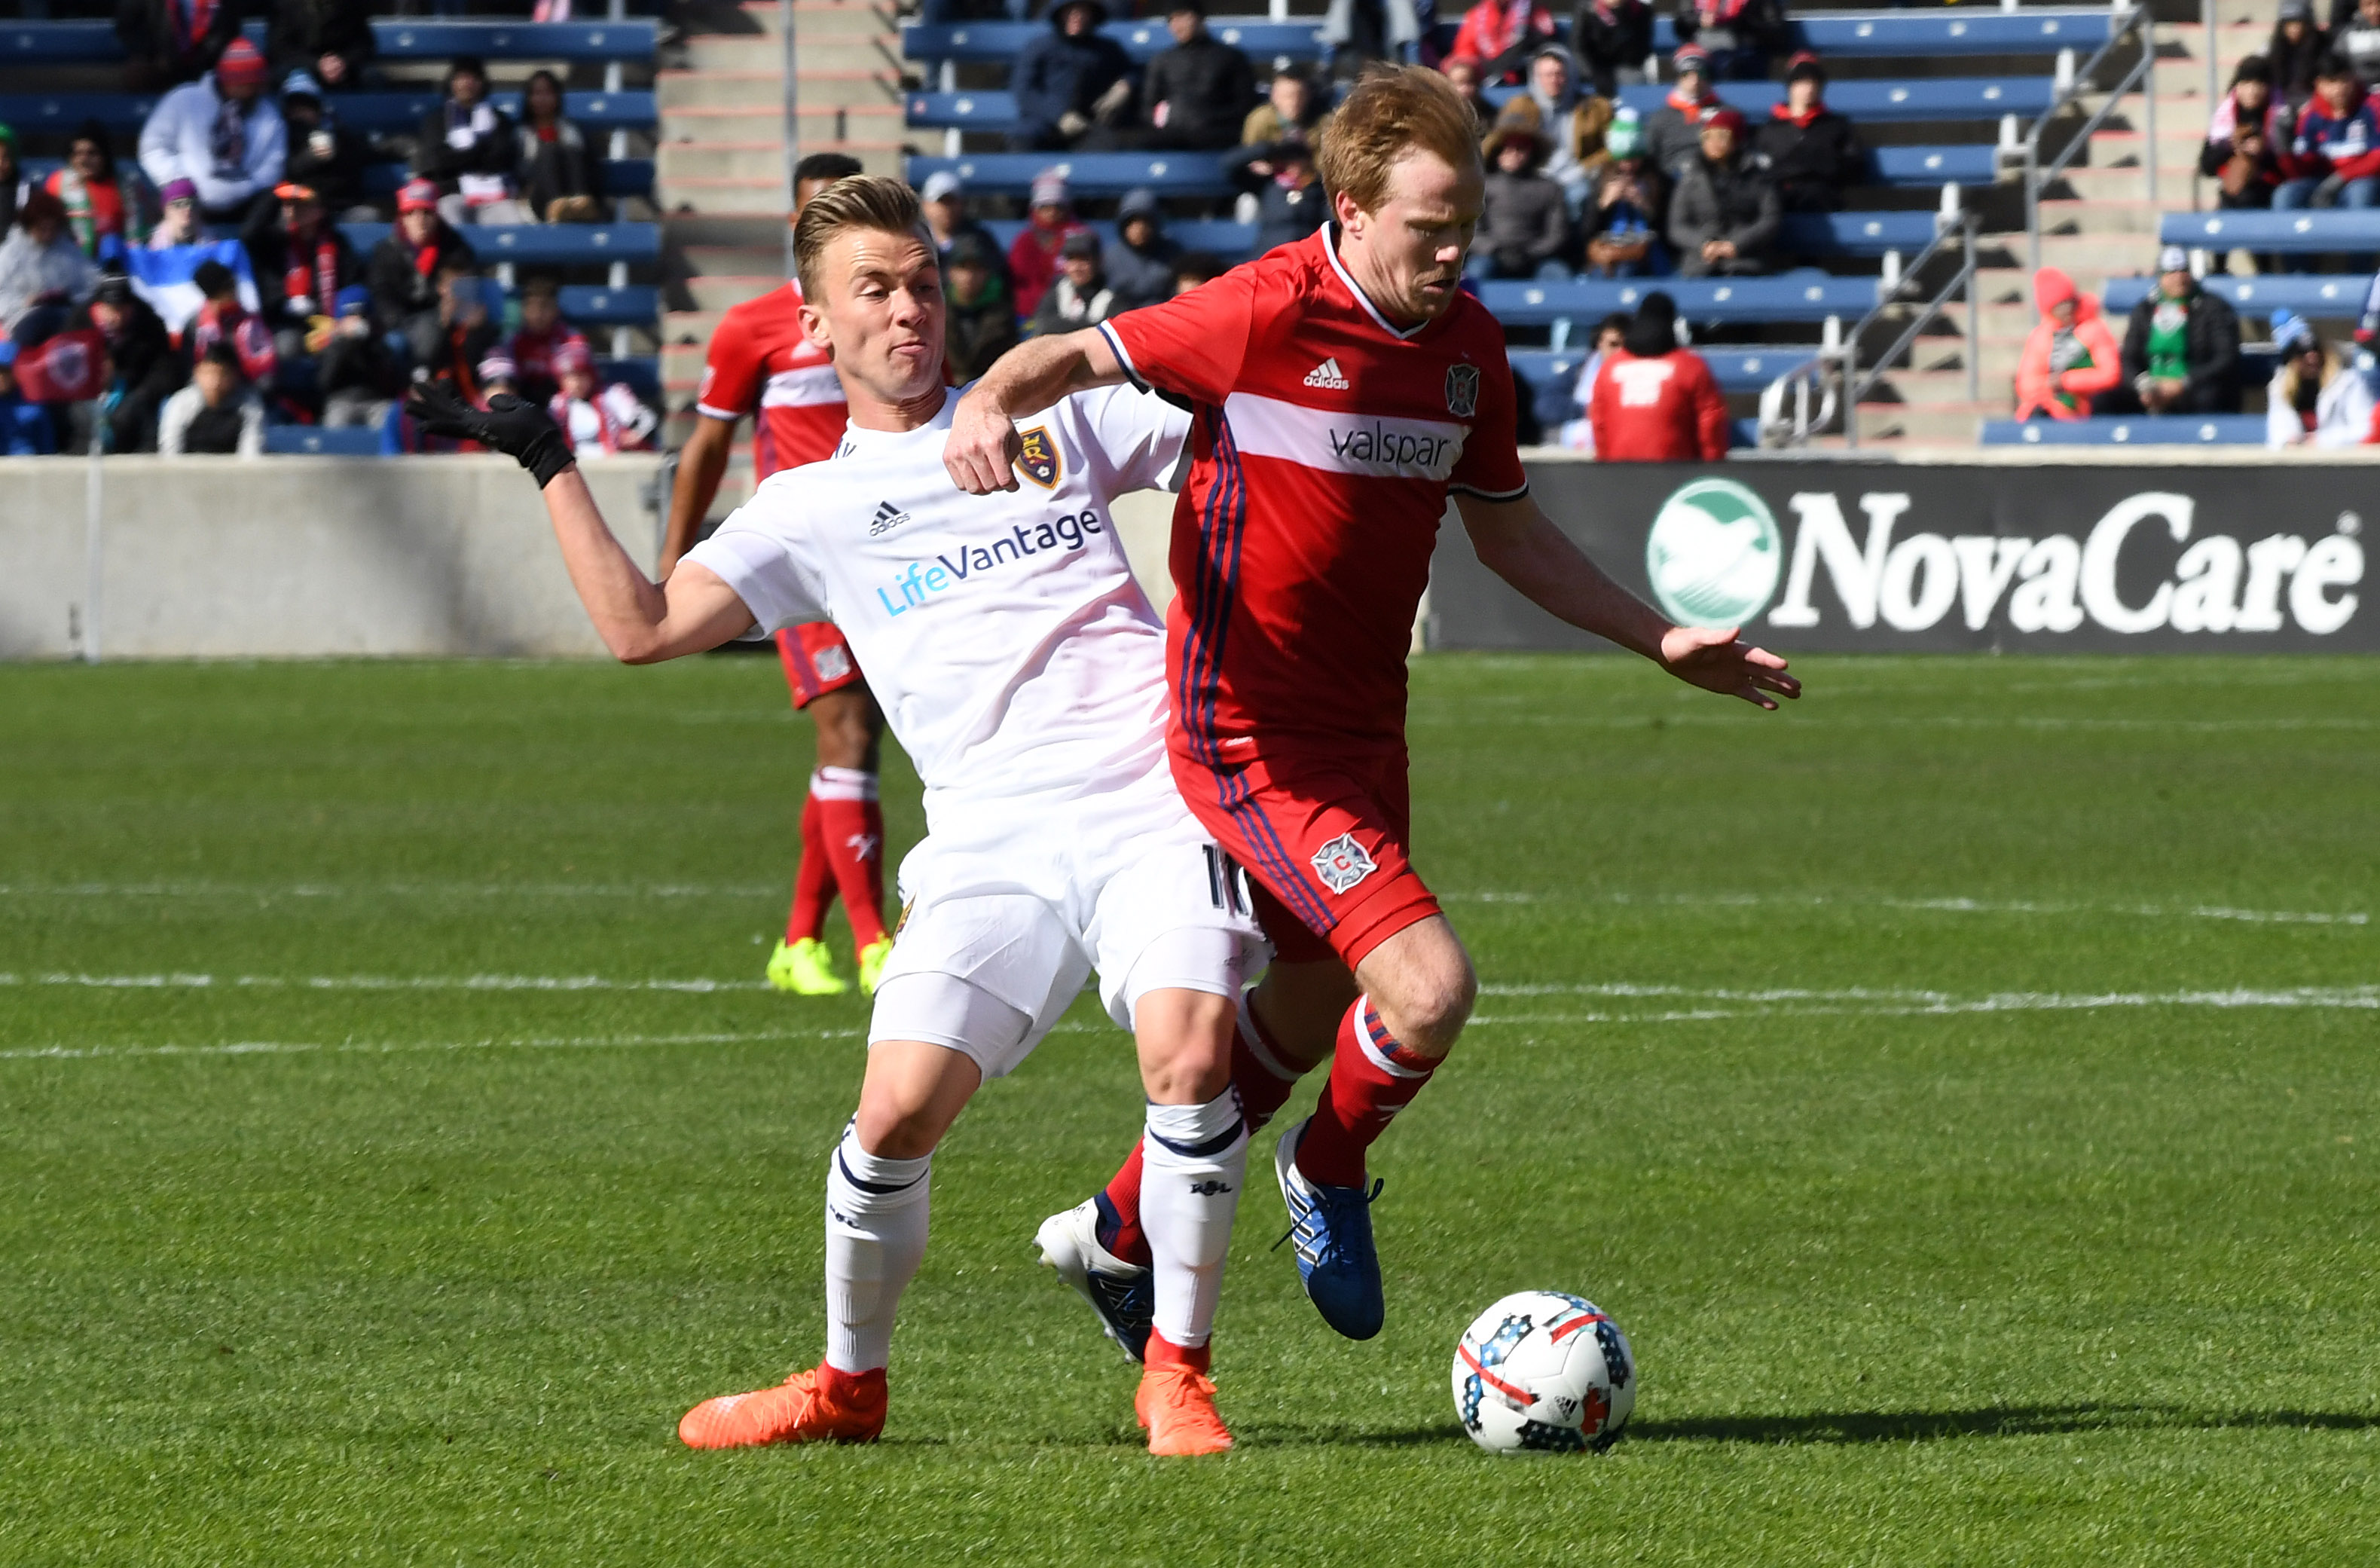 Bastian Schweinsteiger scores for Chicago Fire on MLS debut